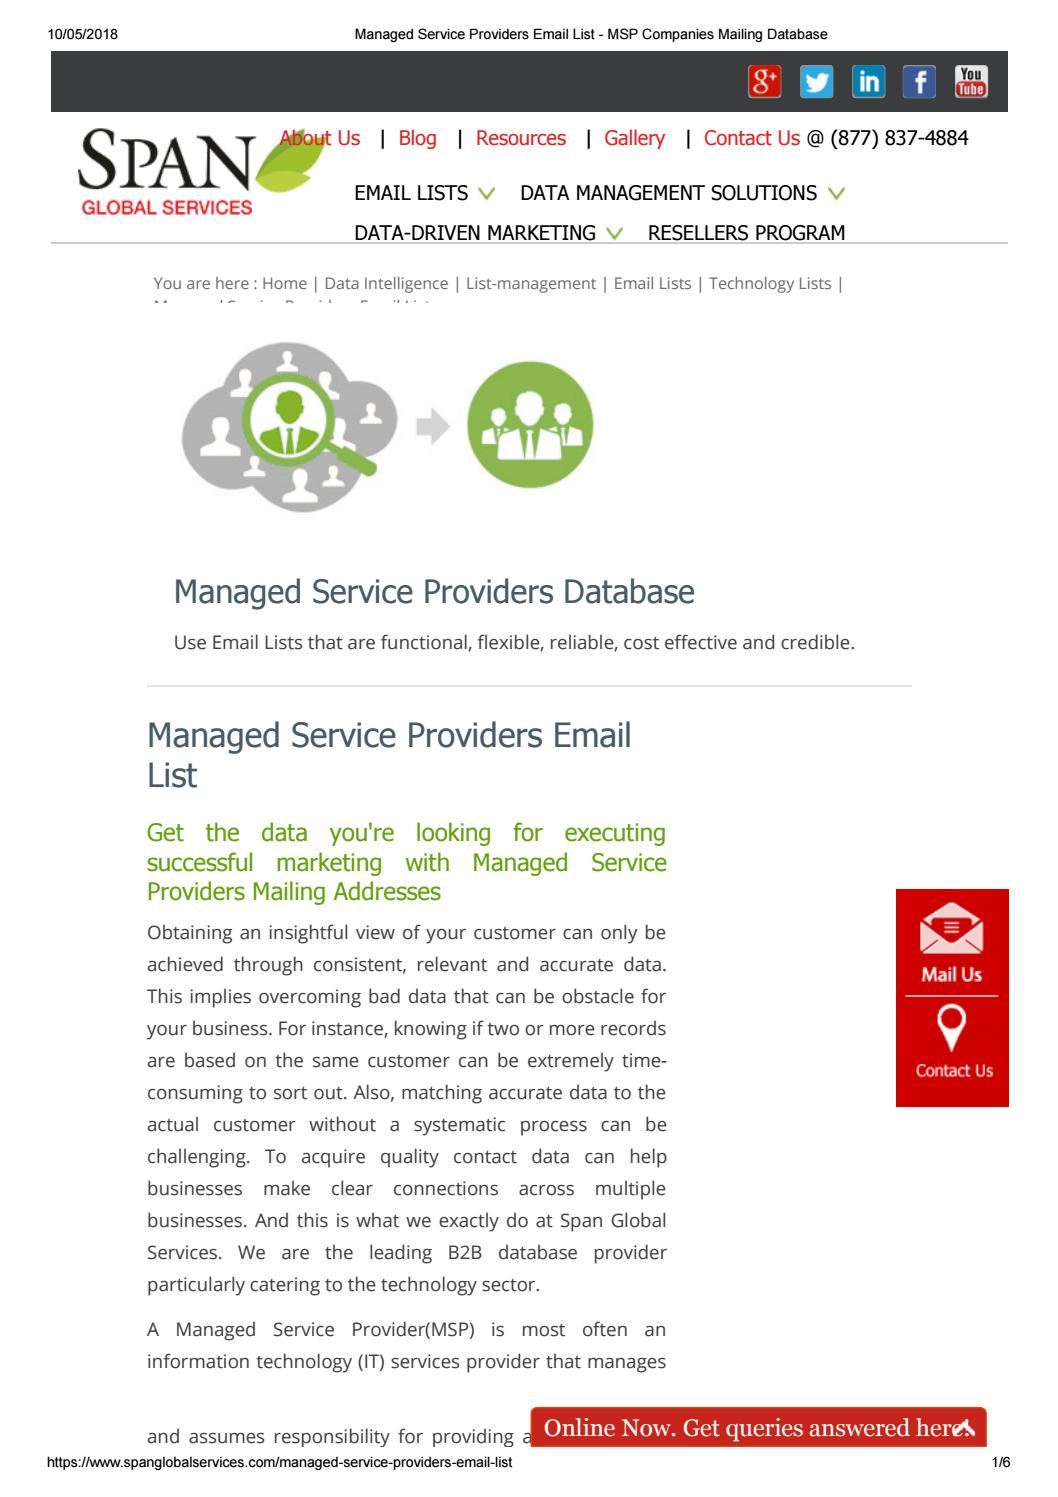 Managed Service Providers Email List by Technology Users